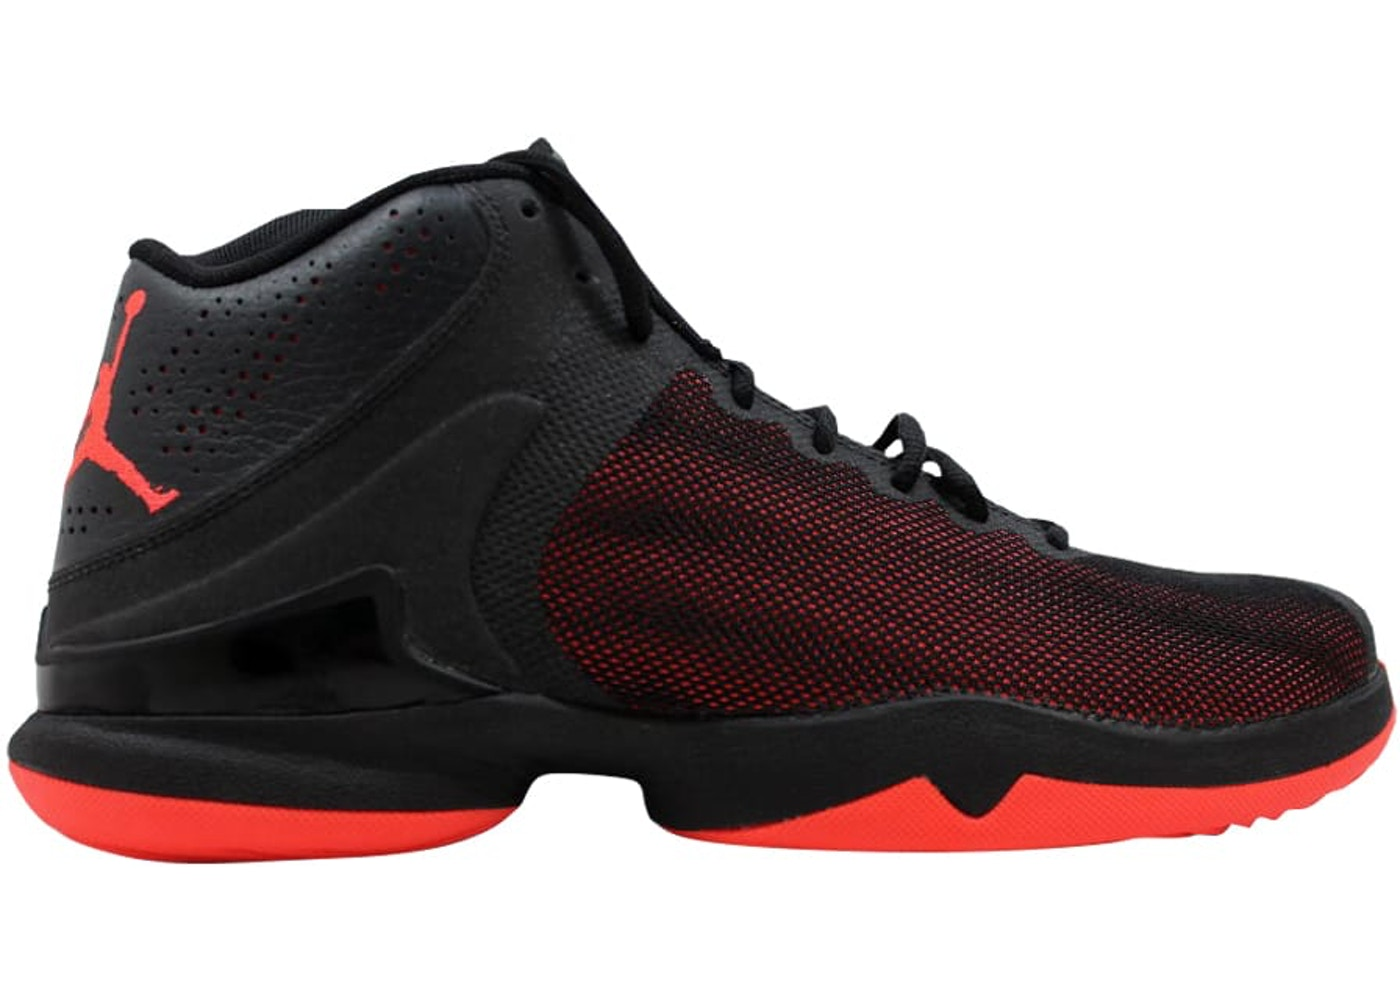 b4bacf26ee3d Sell. or Ask. Size --. View All Bids. Air Jordan Super Fly 4 PO Black  Infrared 23-Anthracite